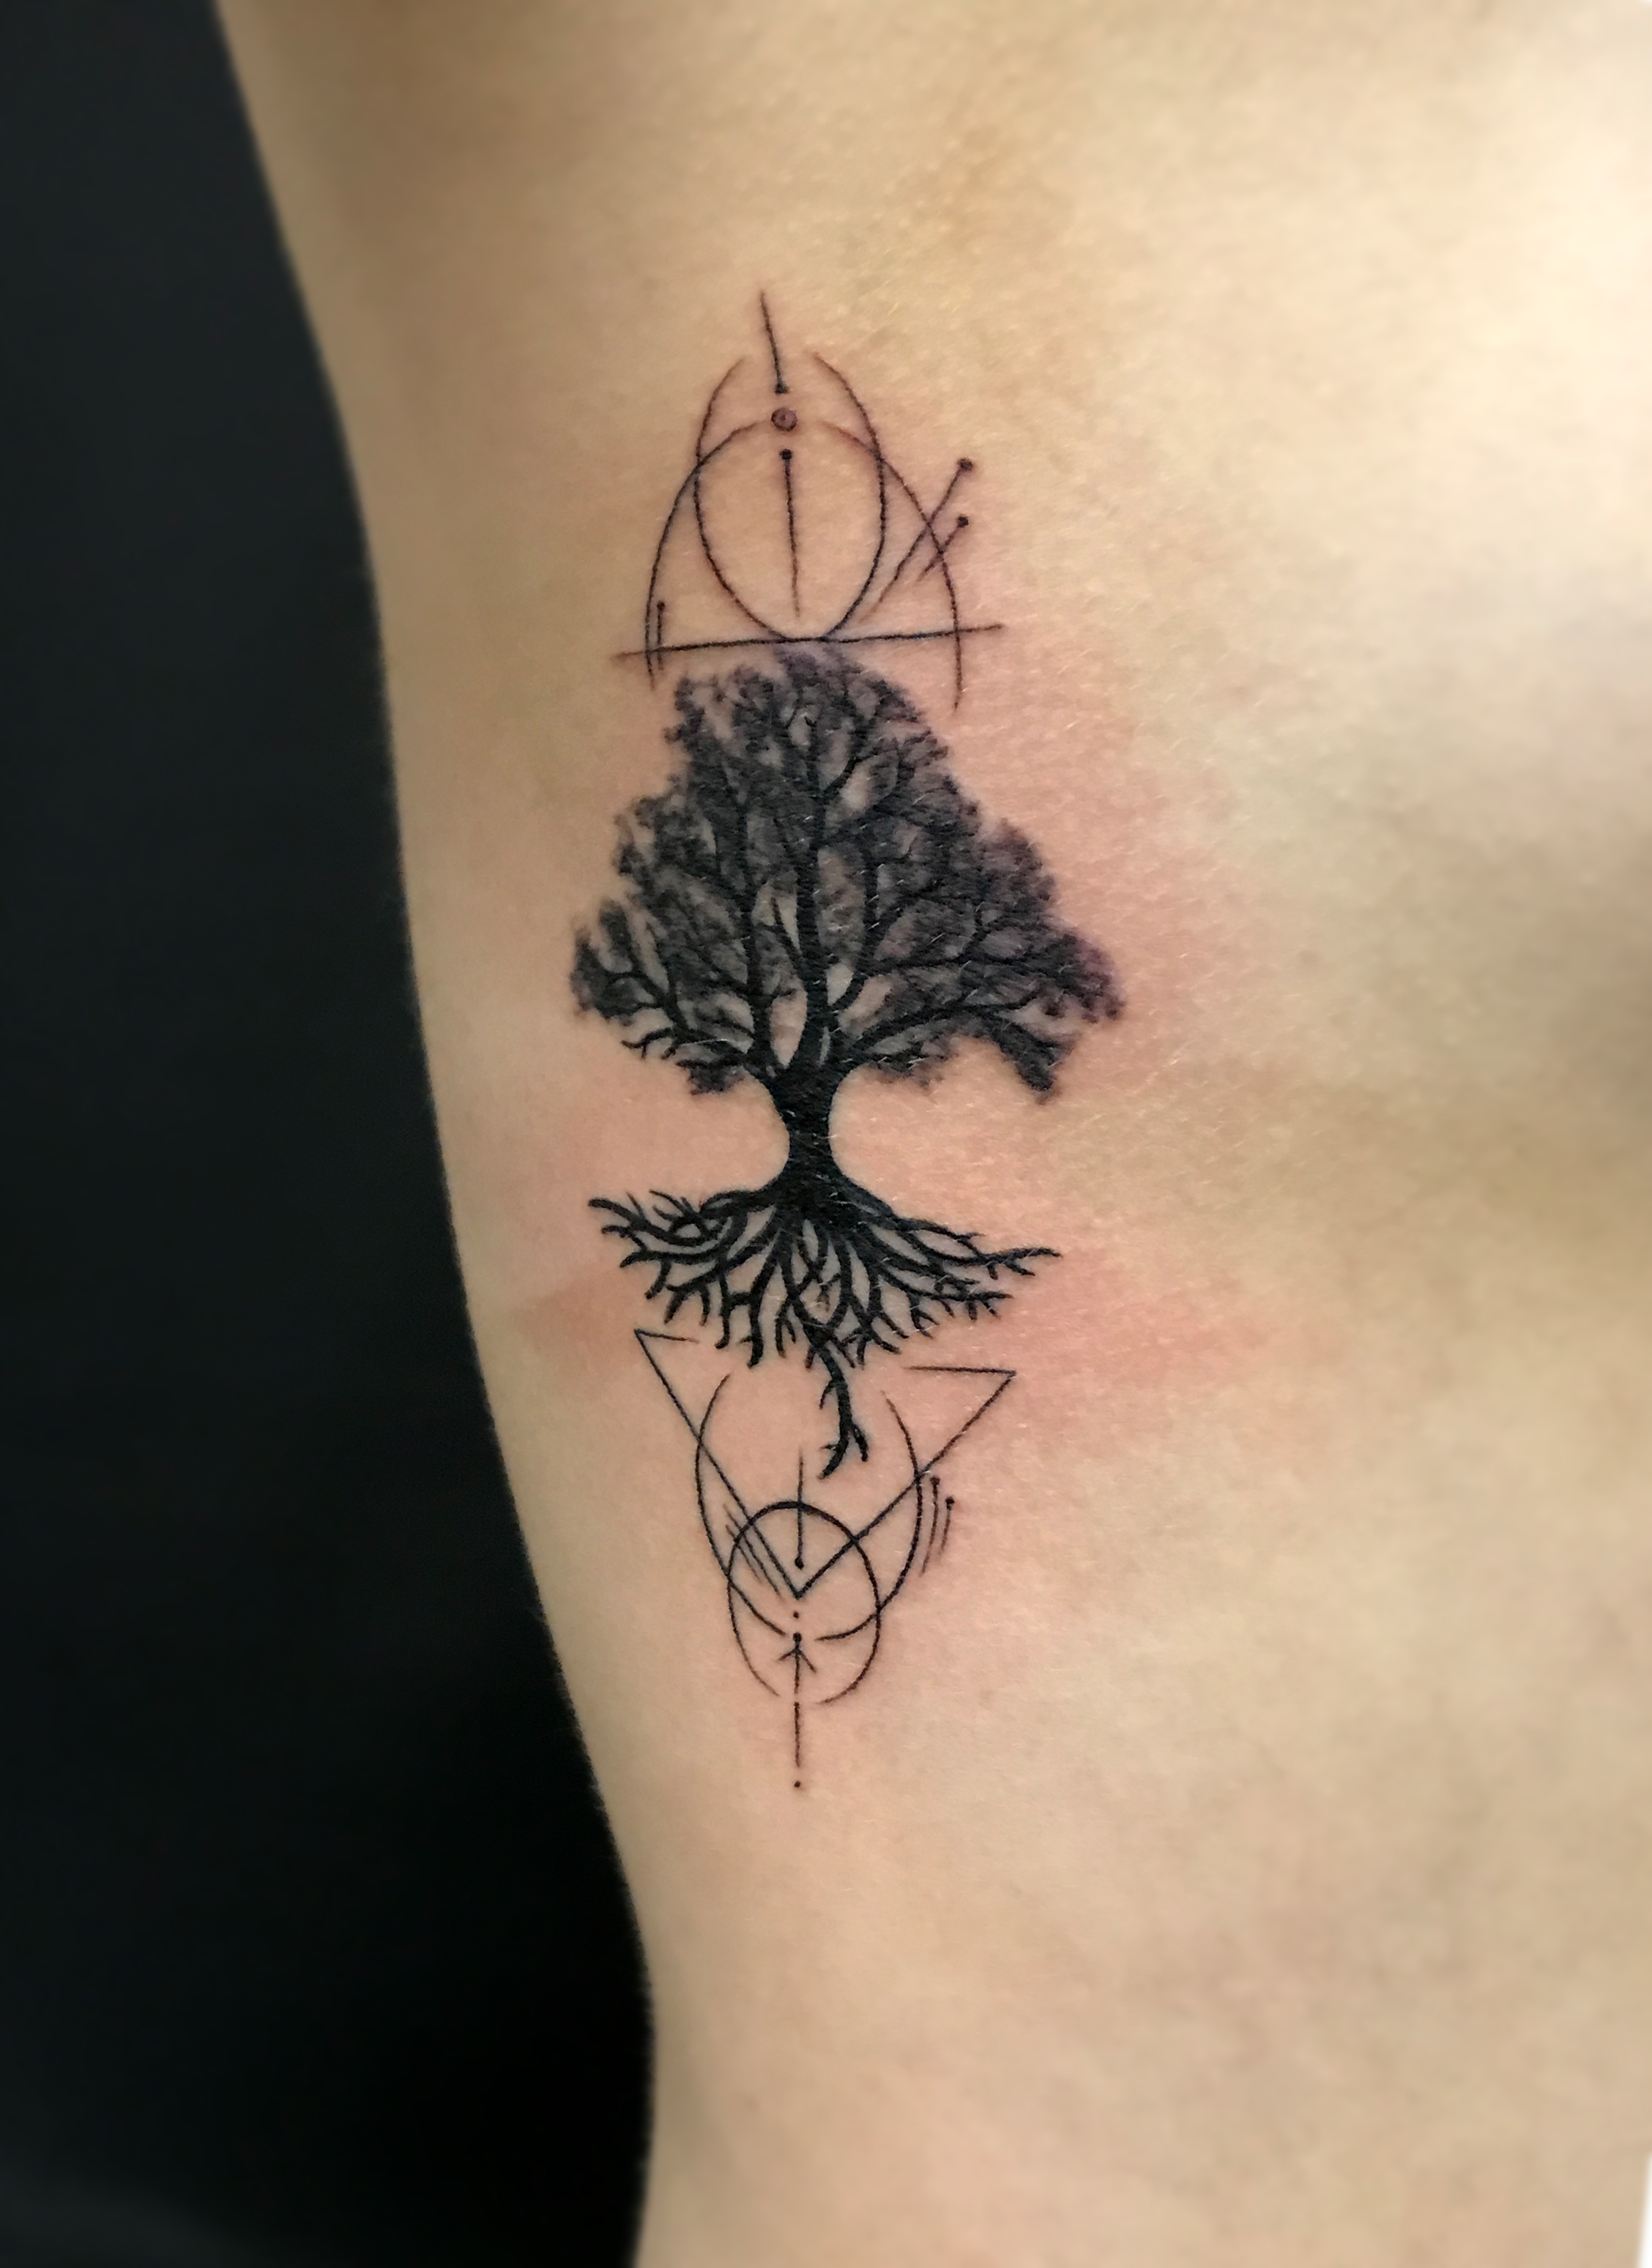 opus magnum sofian meherzi fani tattoo black stilistic tree geometry